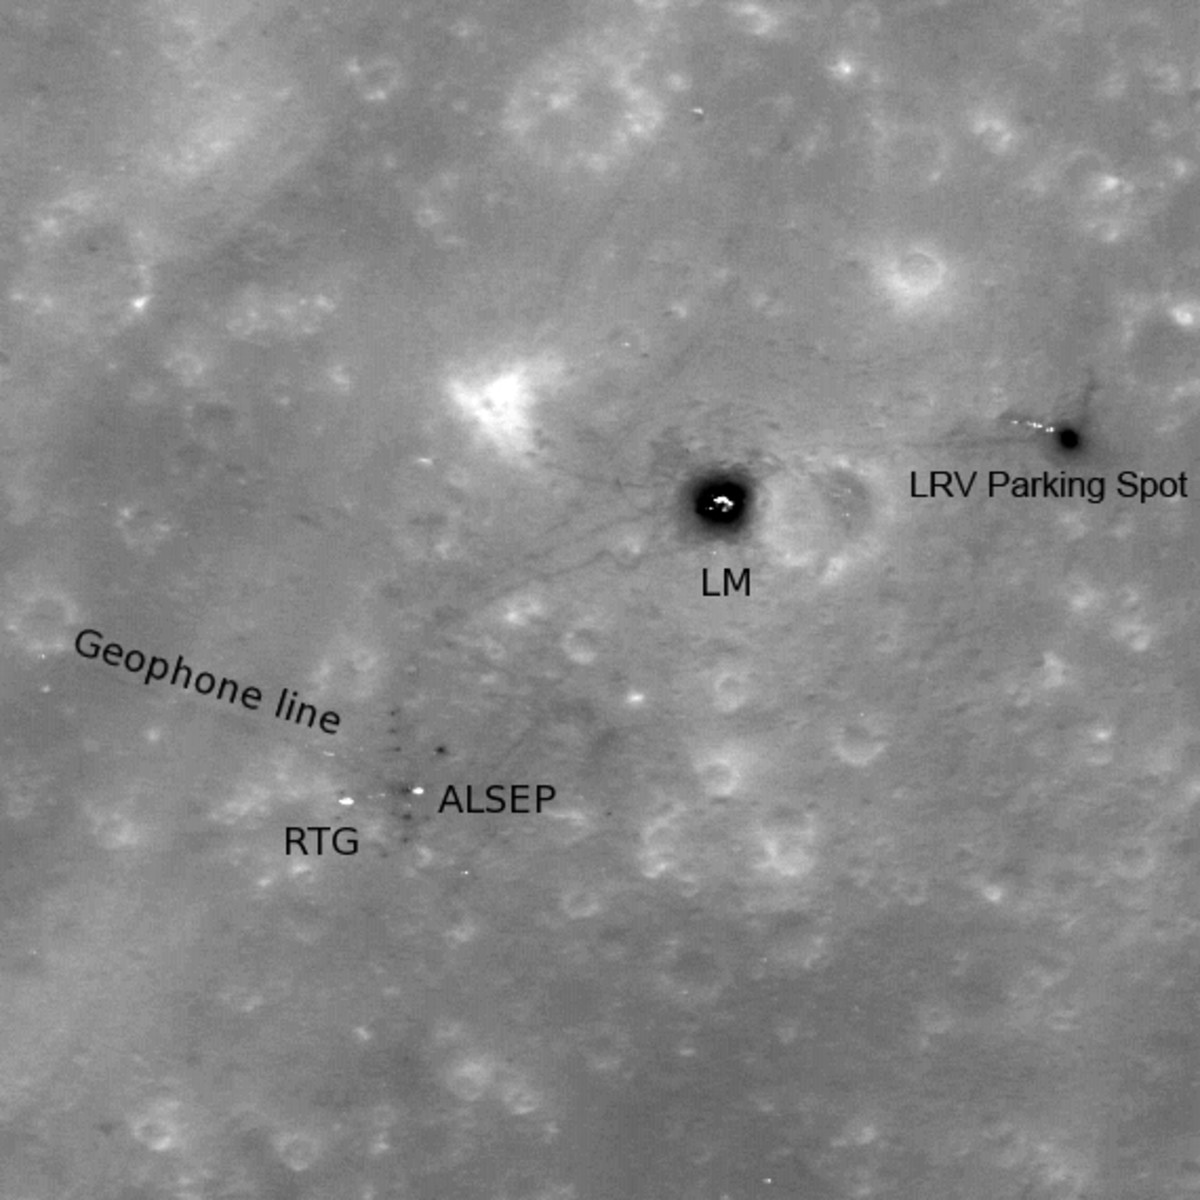 July 2010 - At high noon, the glare off bits of the Orion descent module (LM), buggy (LRV) and instruments looks like white spots in the camera lens. Astronaut tracks are dark.